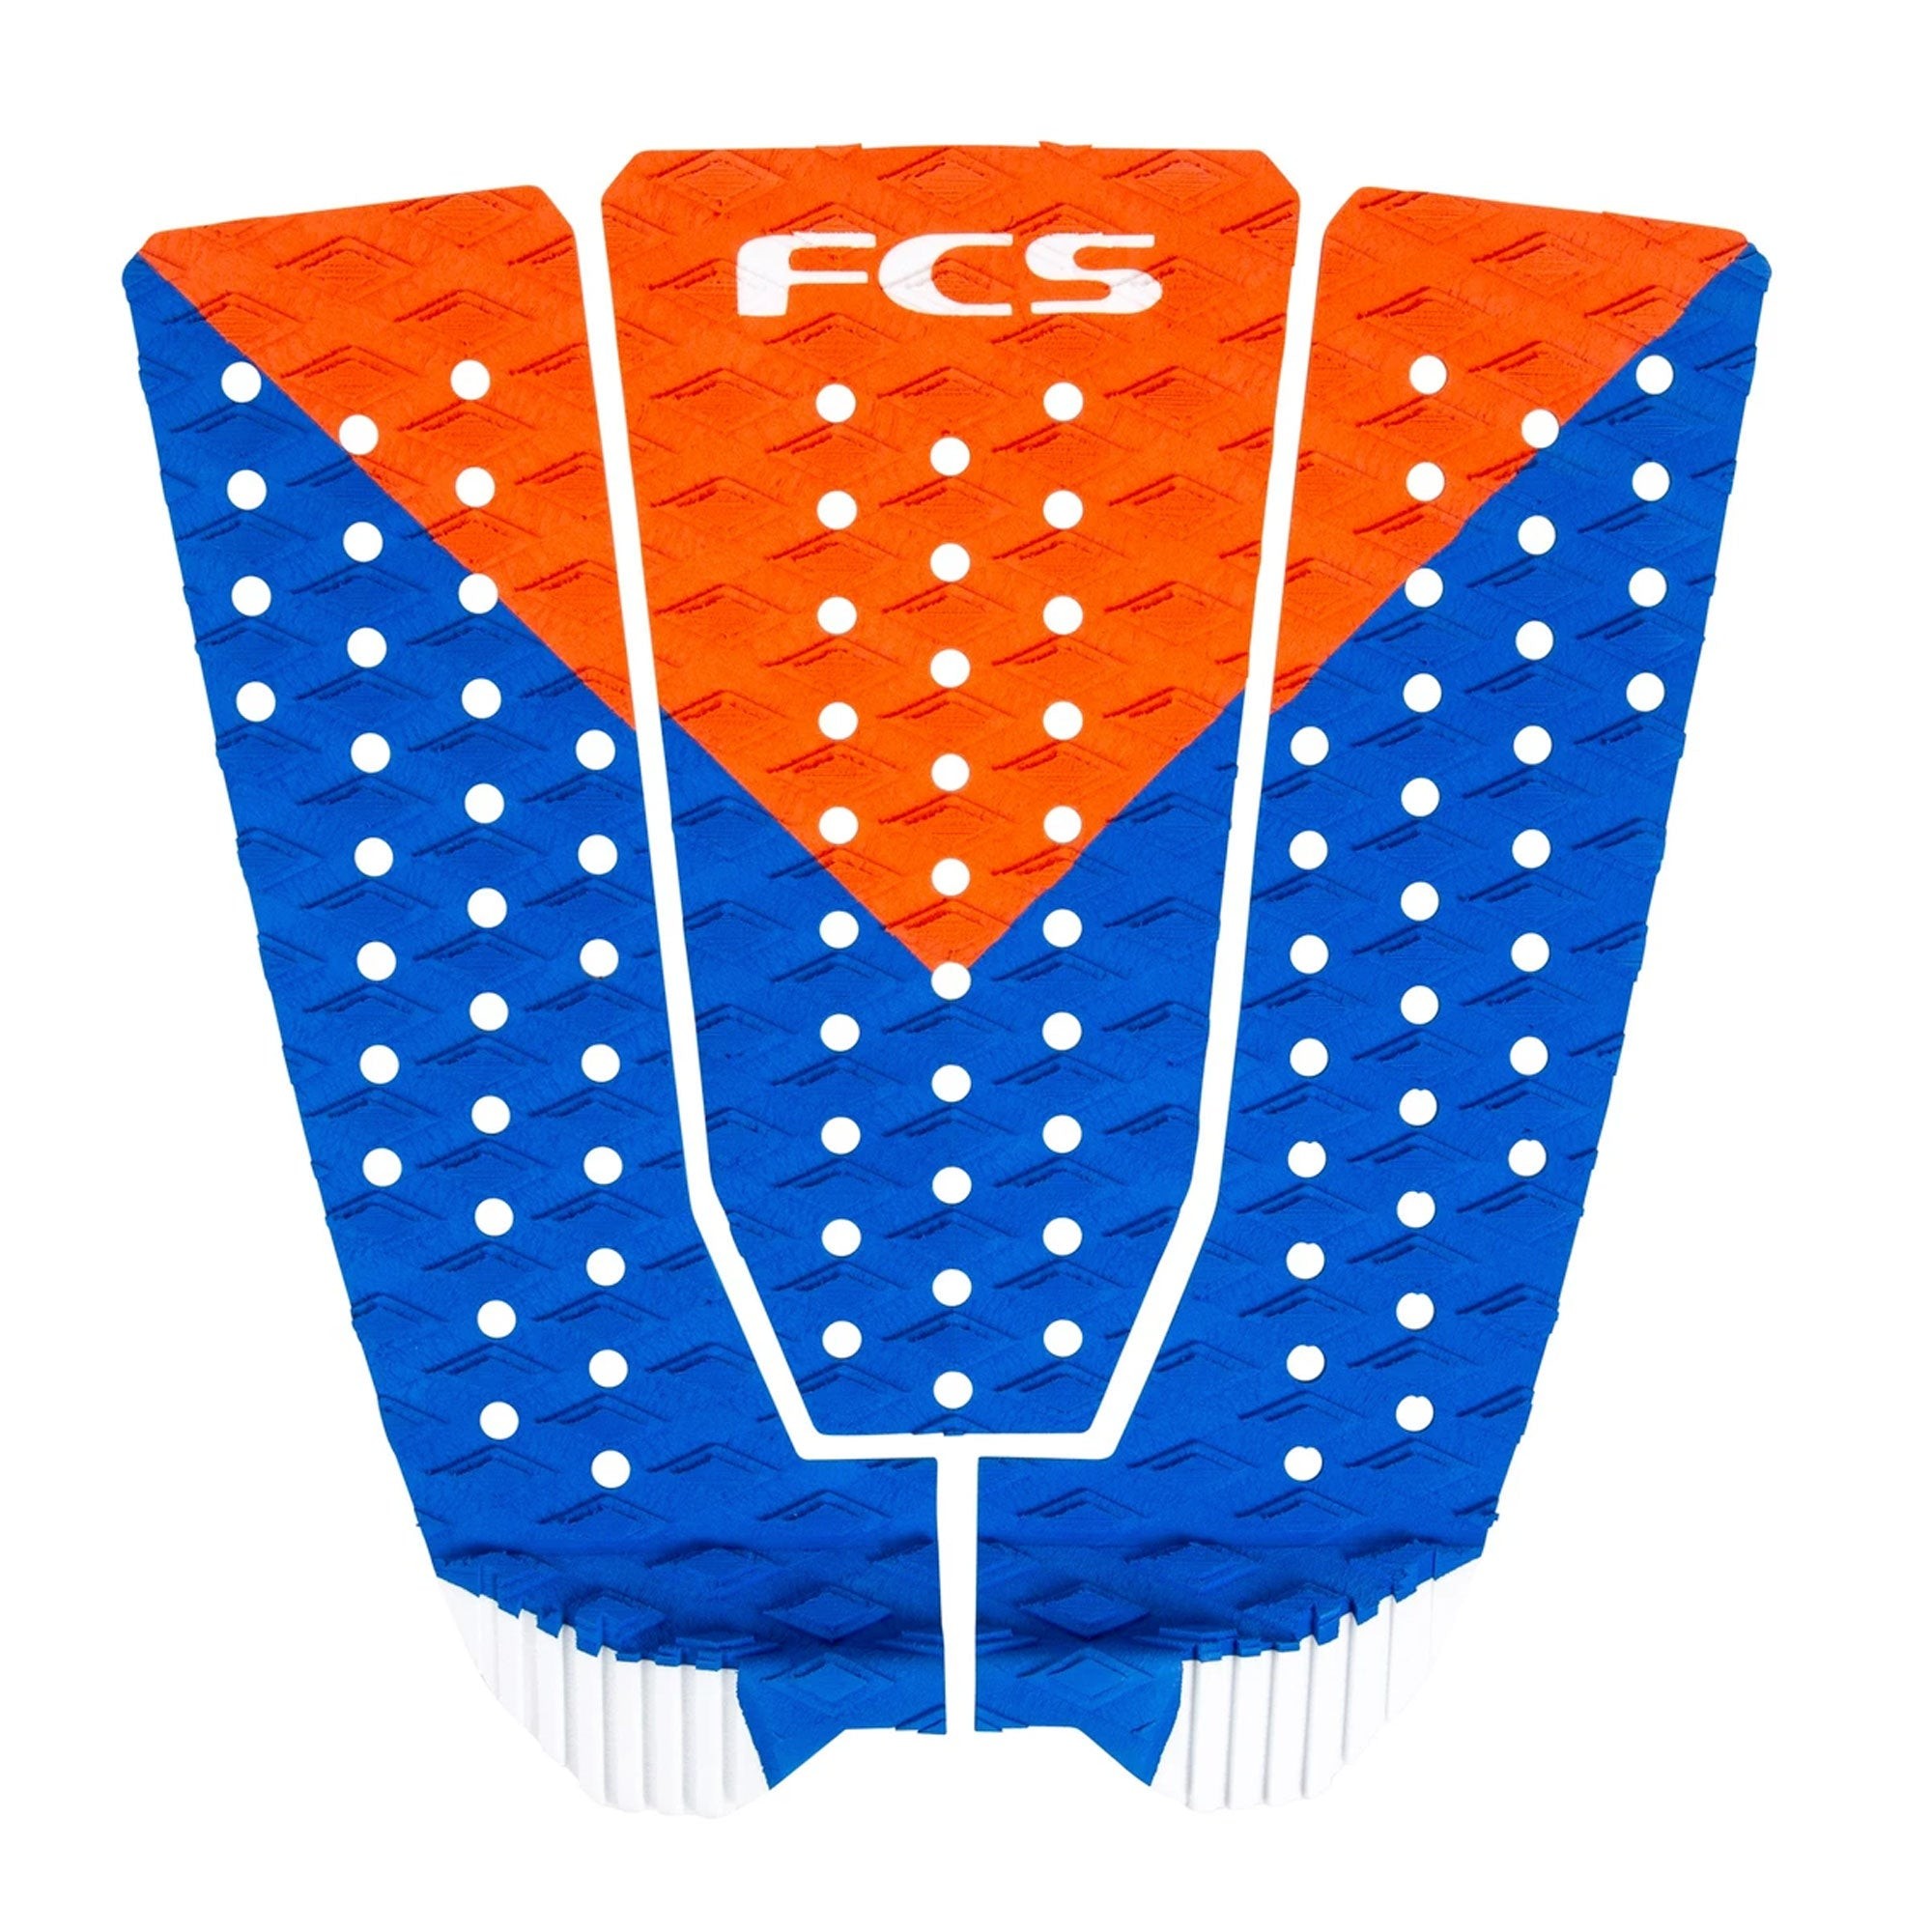 FCS Kolohe Andino Flat Traction Pad - Red/Blue